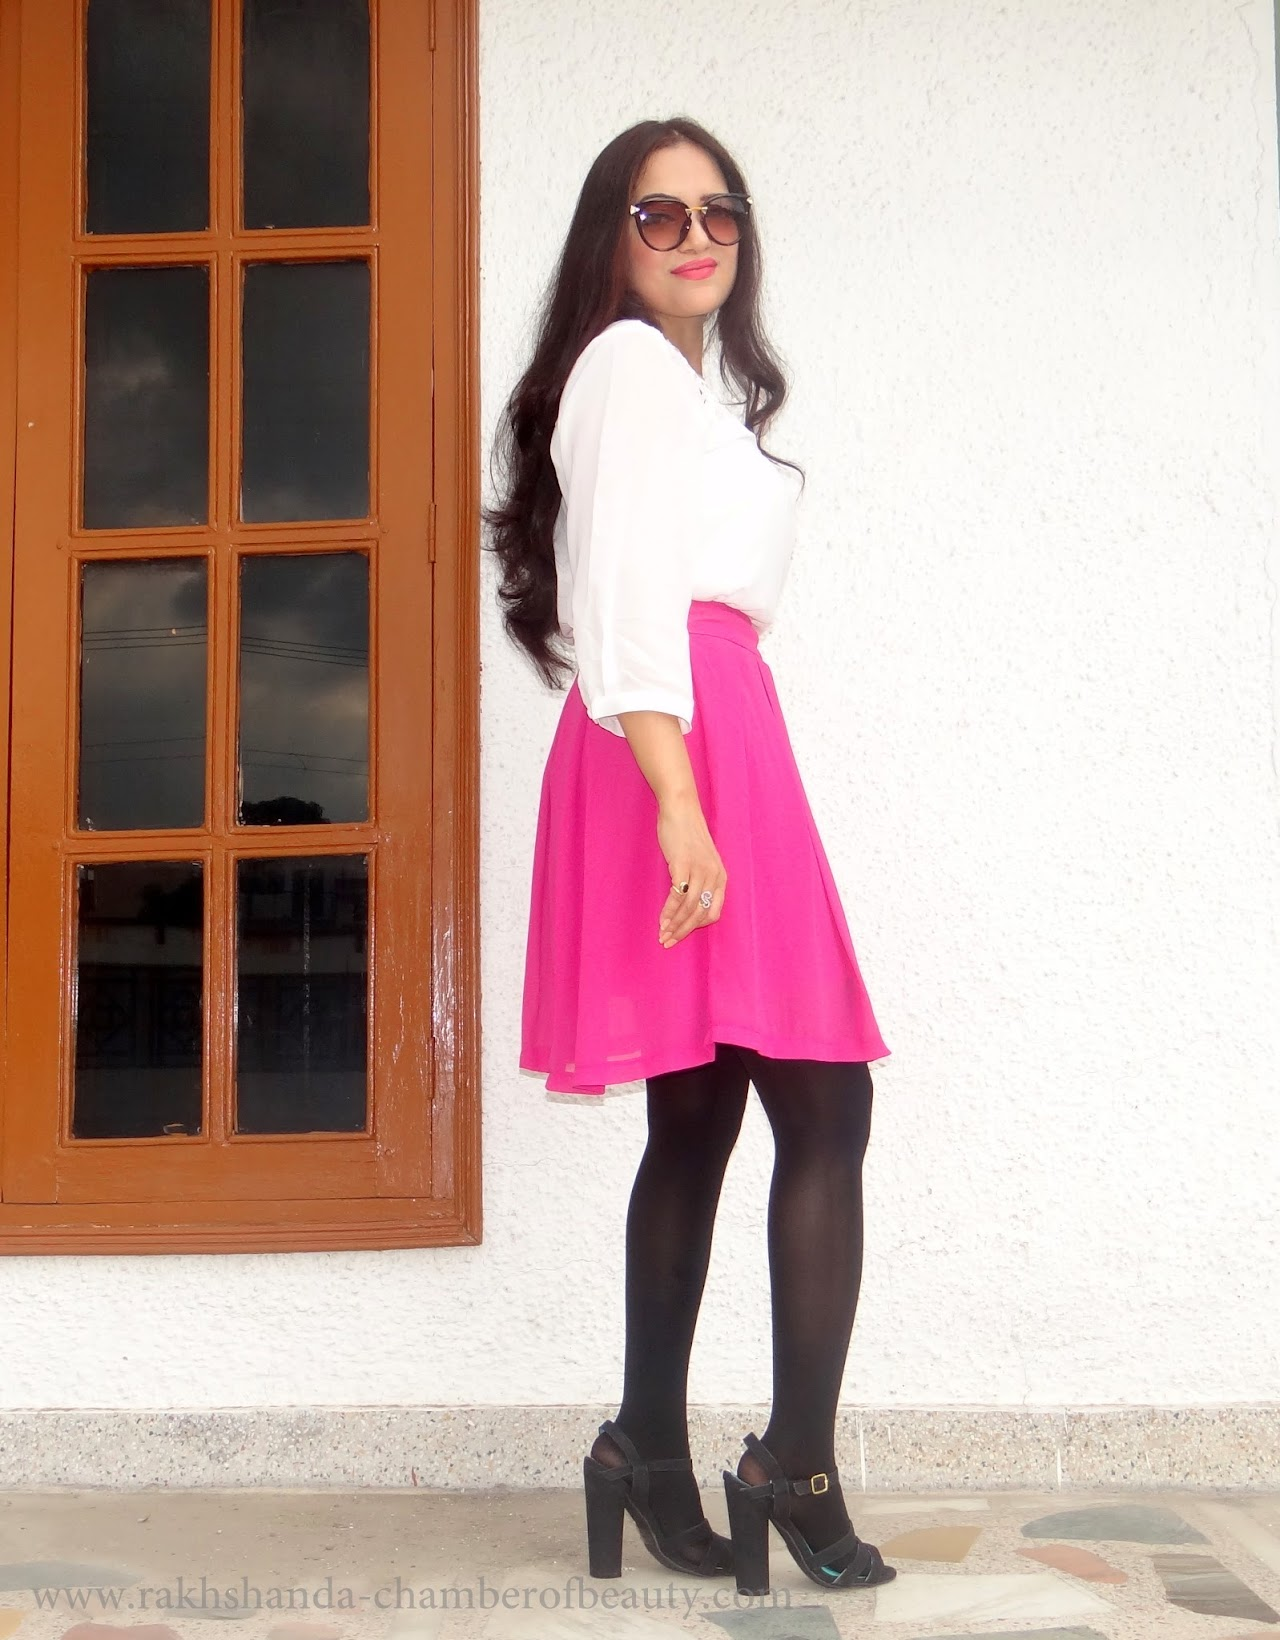 Walktrendy White top & pleated pink skirt-OOTD | Fashion trends 2015, Lucluc cat eye sunglasses, how to style a skater skirt, summer fashion, OOTD, Indian fashion blogger, Chamber of Beauty